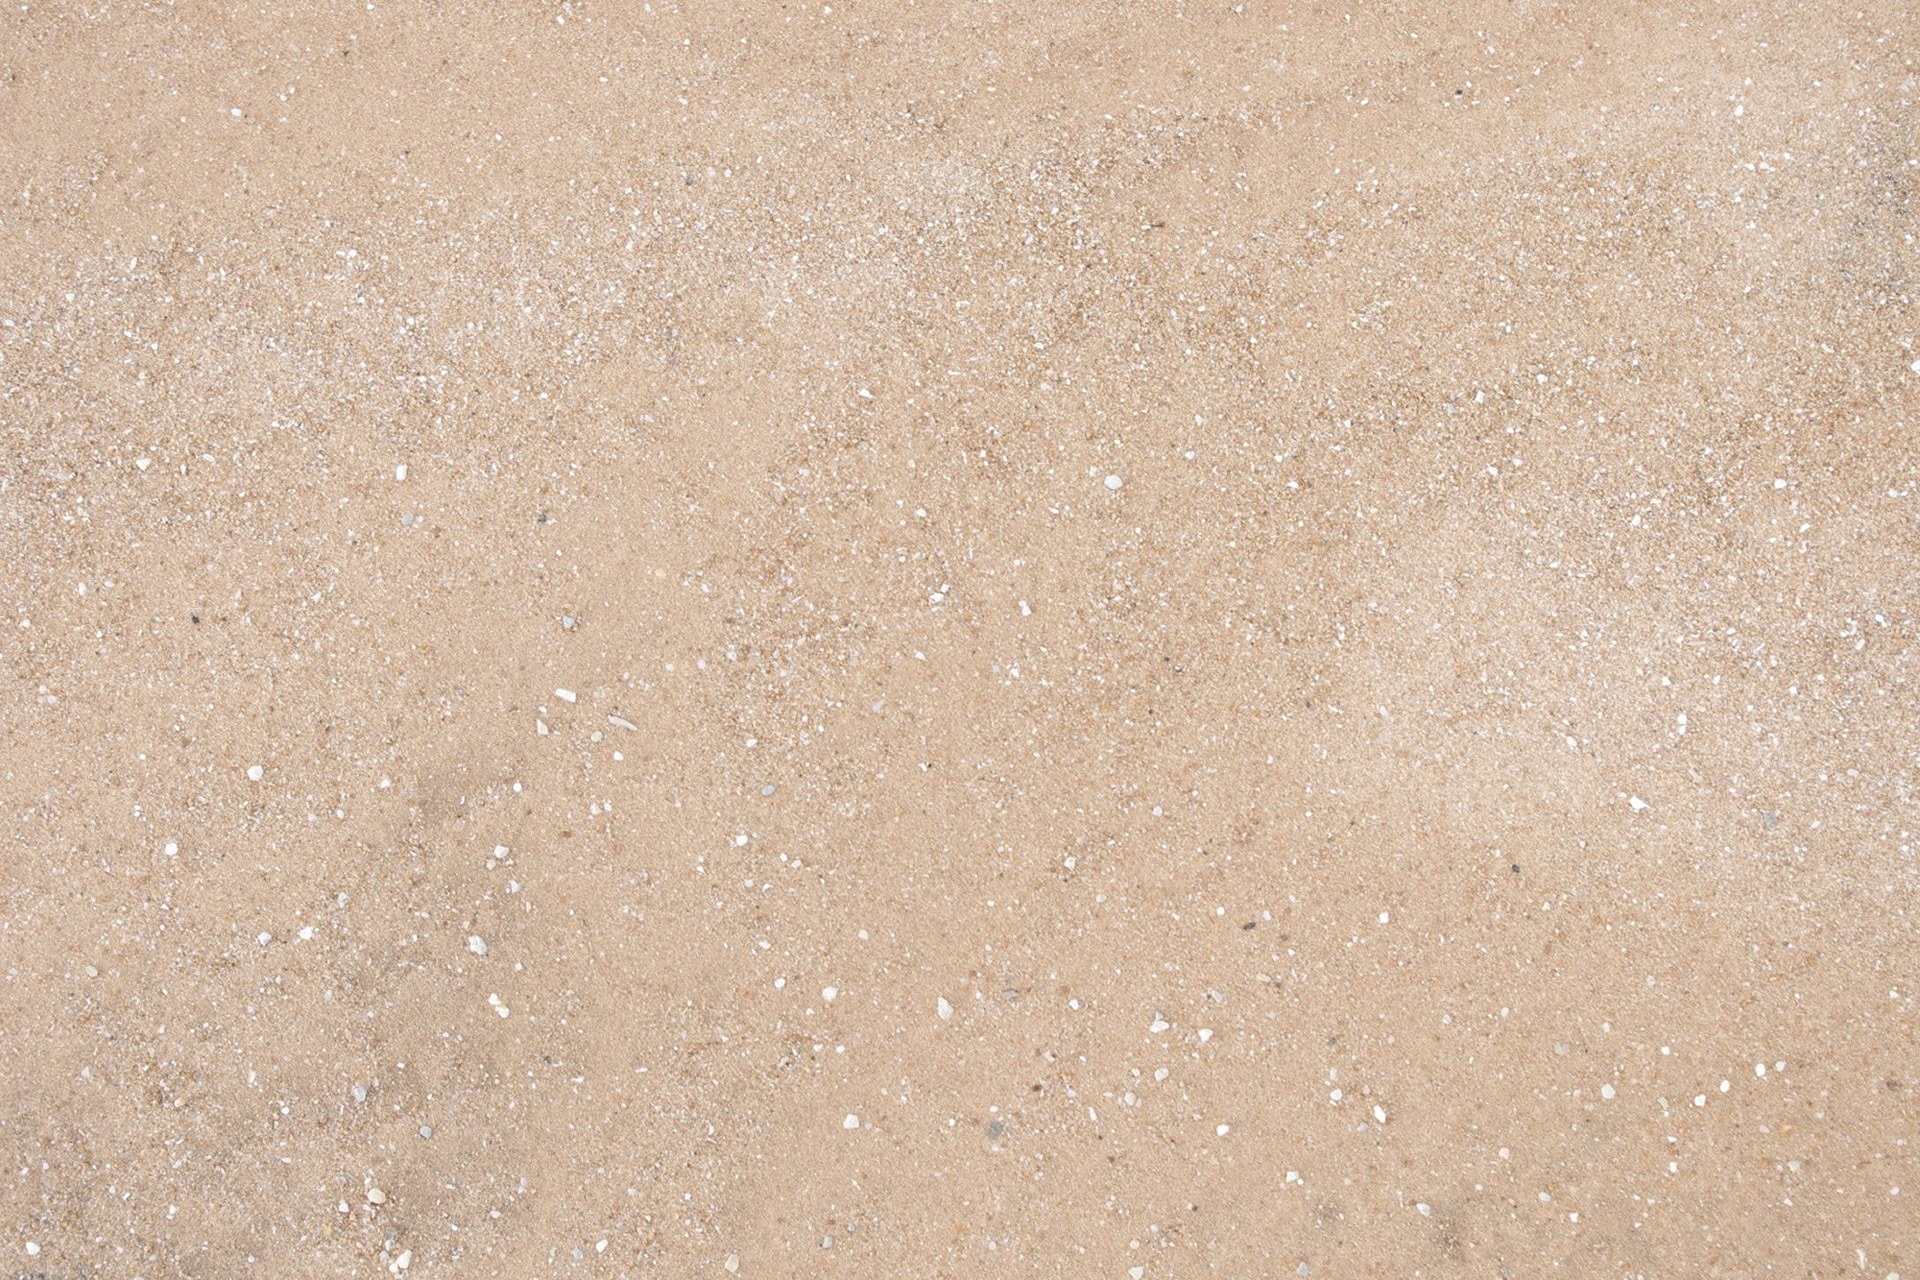 Sand Background Free Stock Photo Public Domain Pictures